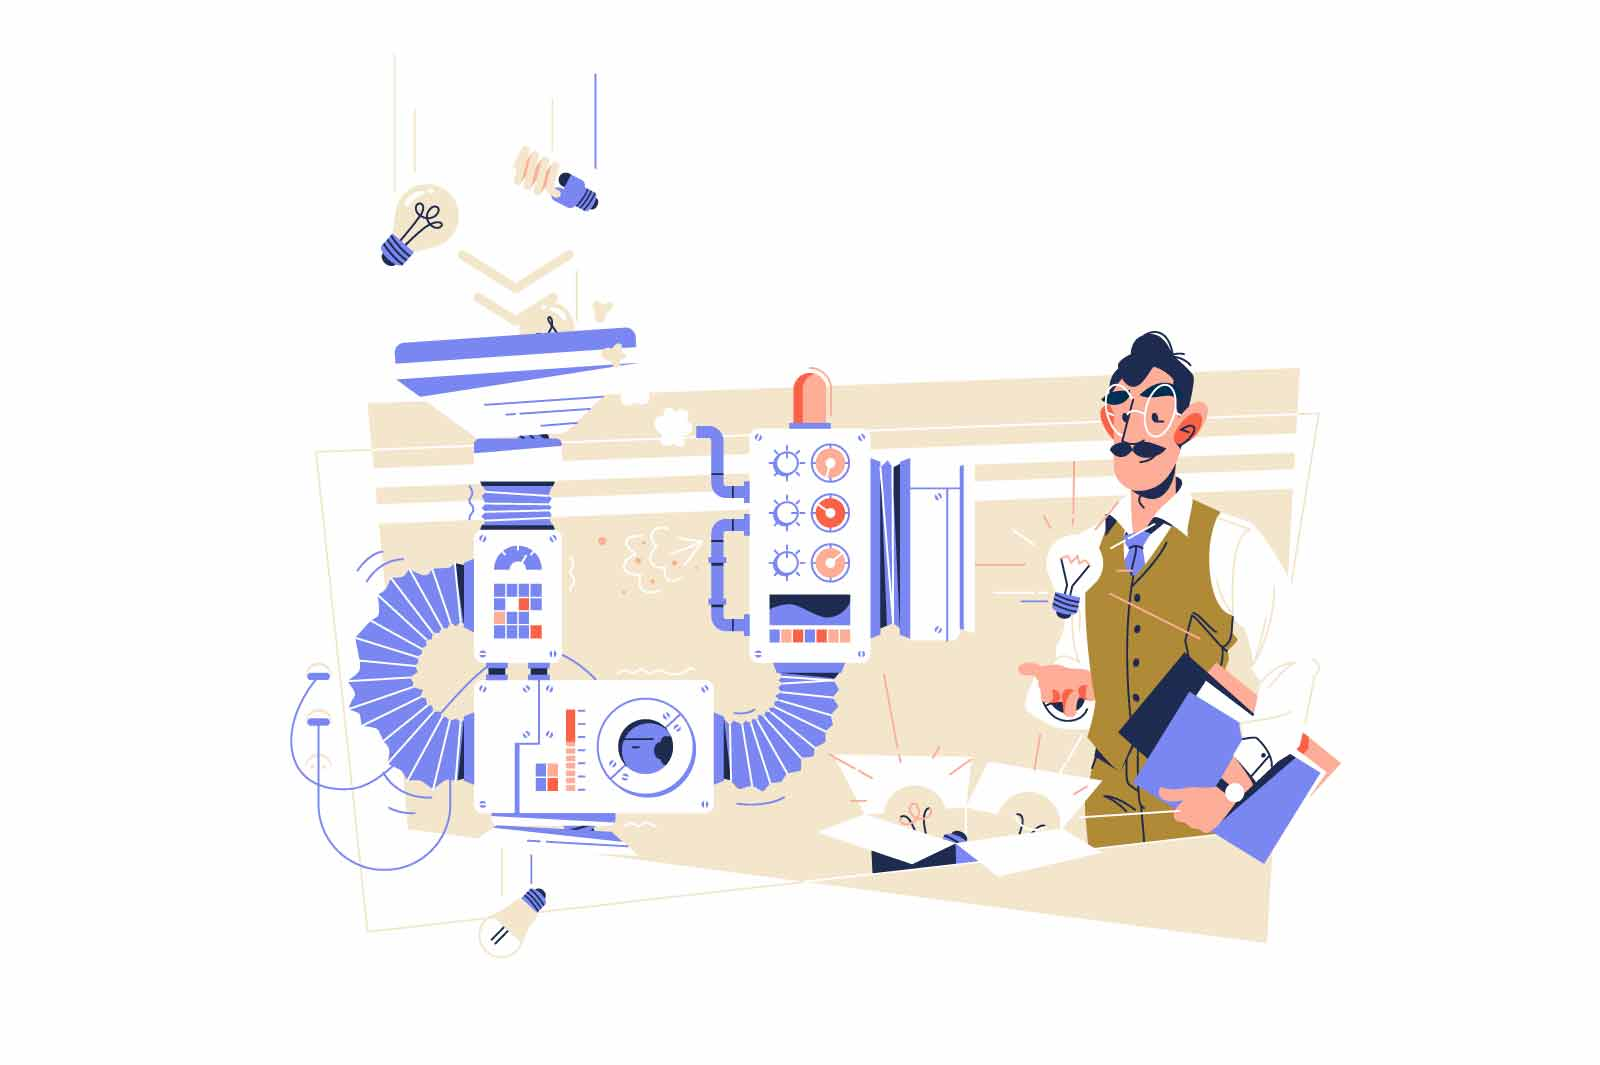 Scientist created machine to filter idea vector illustration. Lightbulb as creative vision flat style. Science, invention, discovery concept